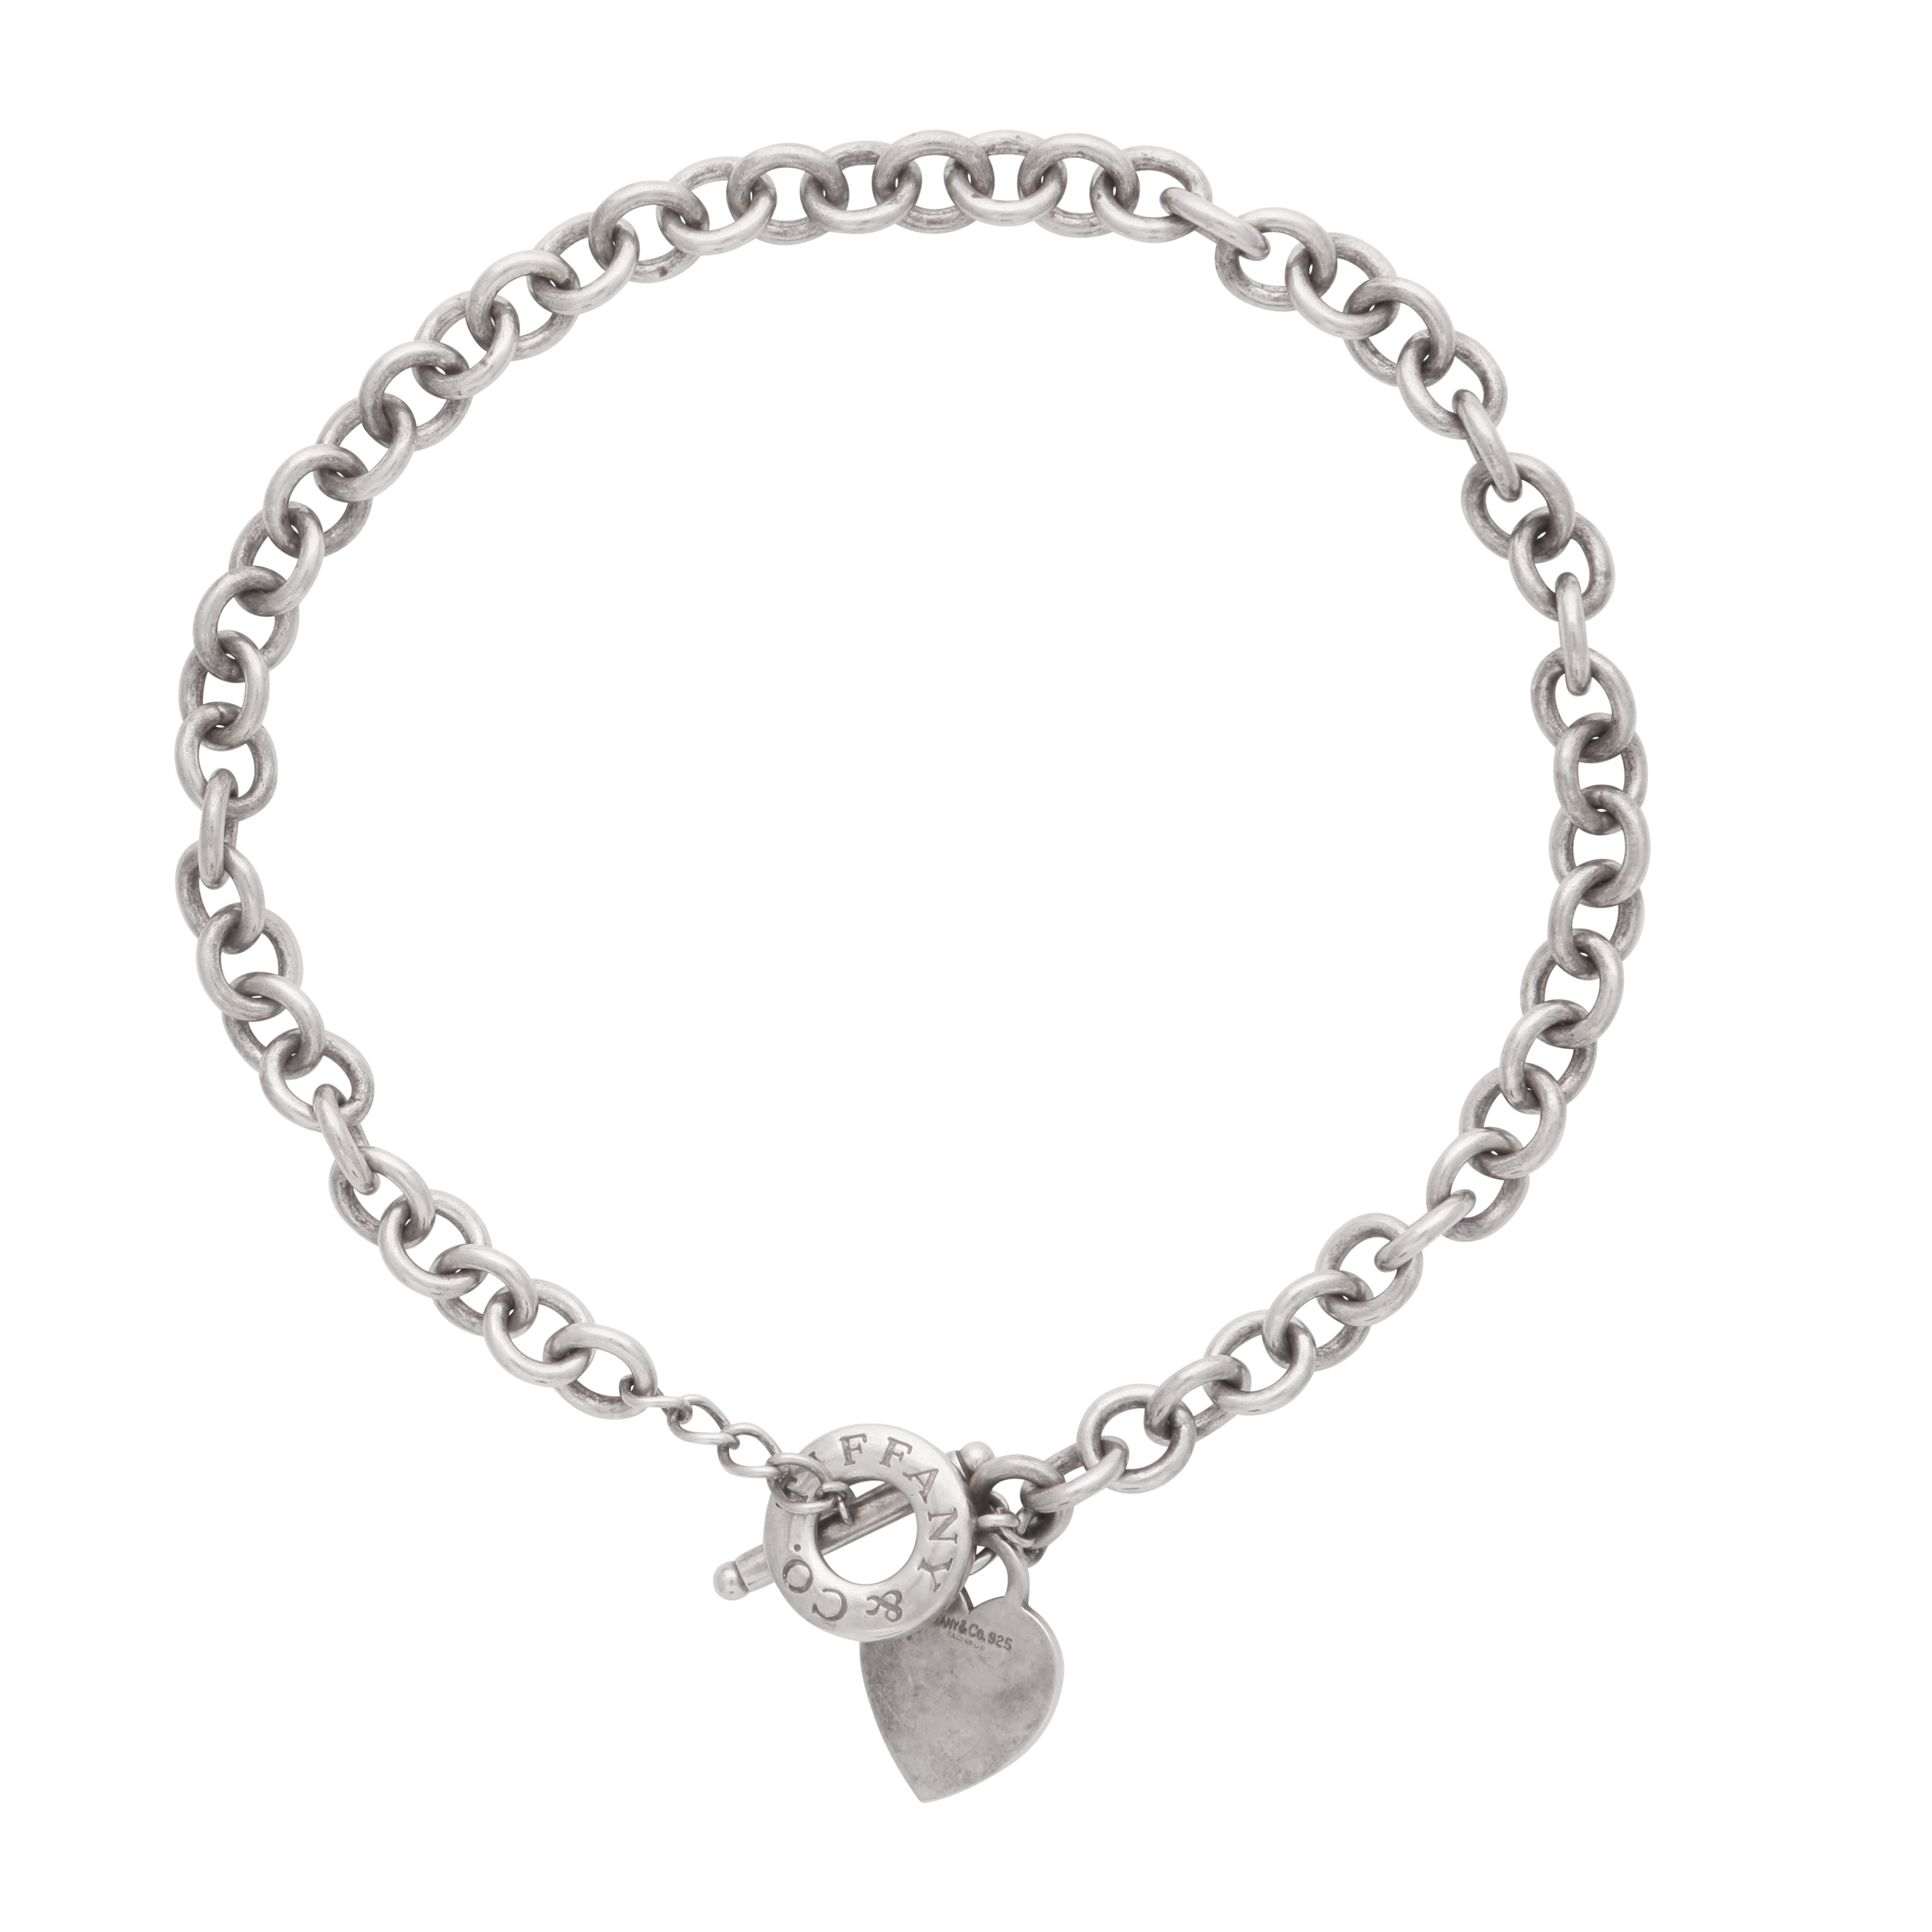 Los 197 - TIFFANY & CO - A belcher link chain necklace formed of a curb link chain with t-bar and clasp,